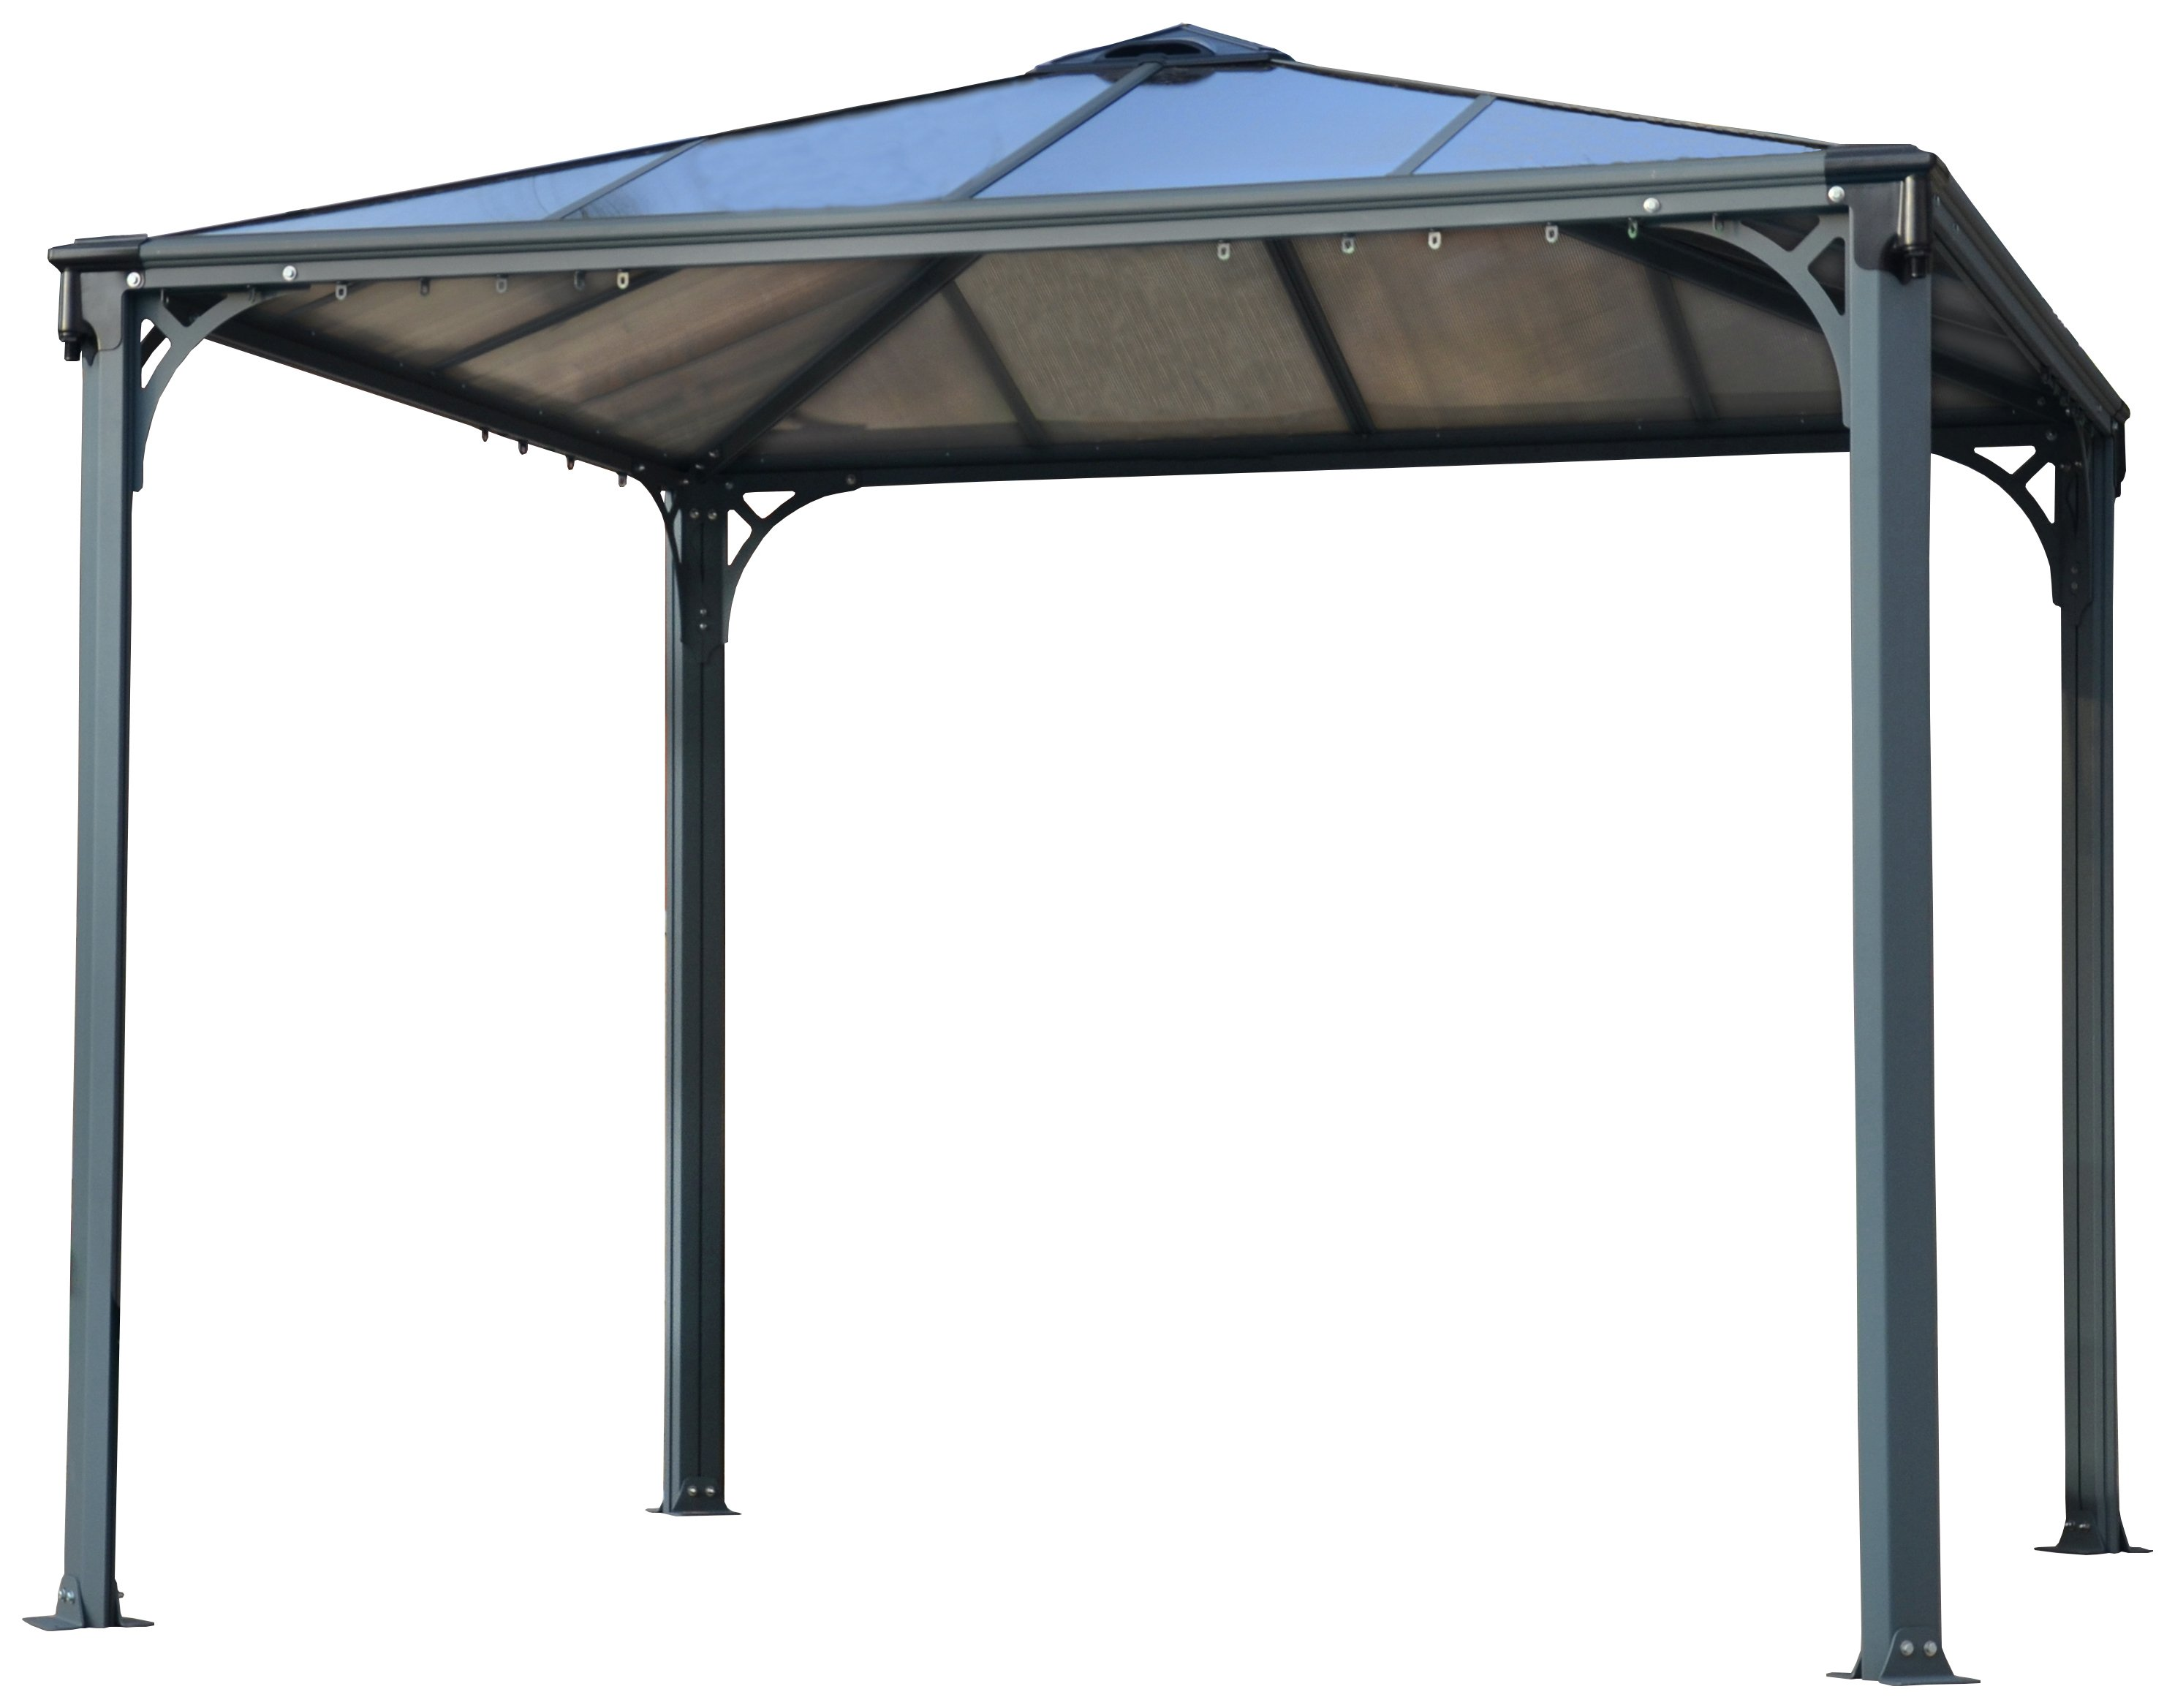 Palram Palermo 9.6x9.6ft Gazebo - Dark Grey. lowest price